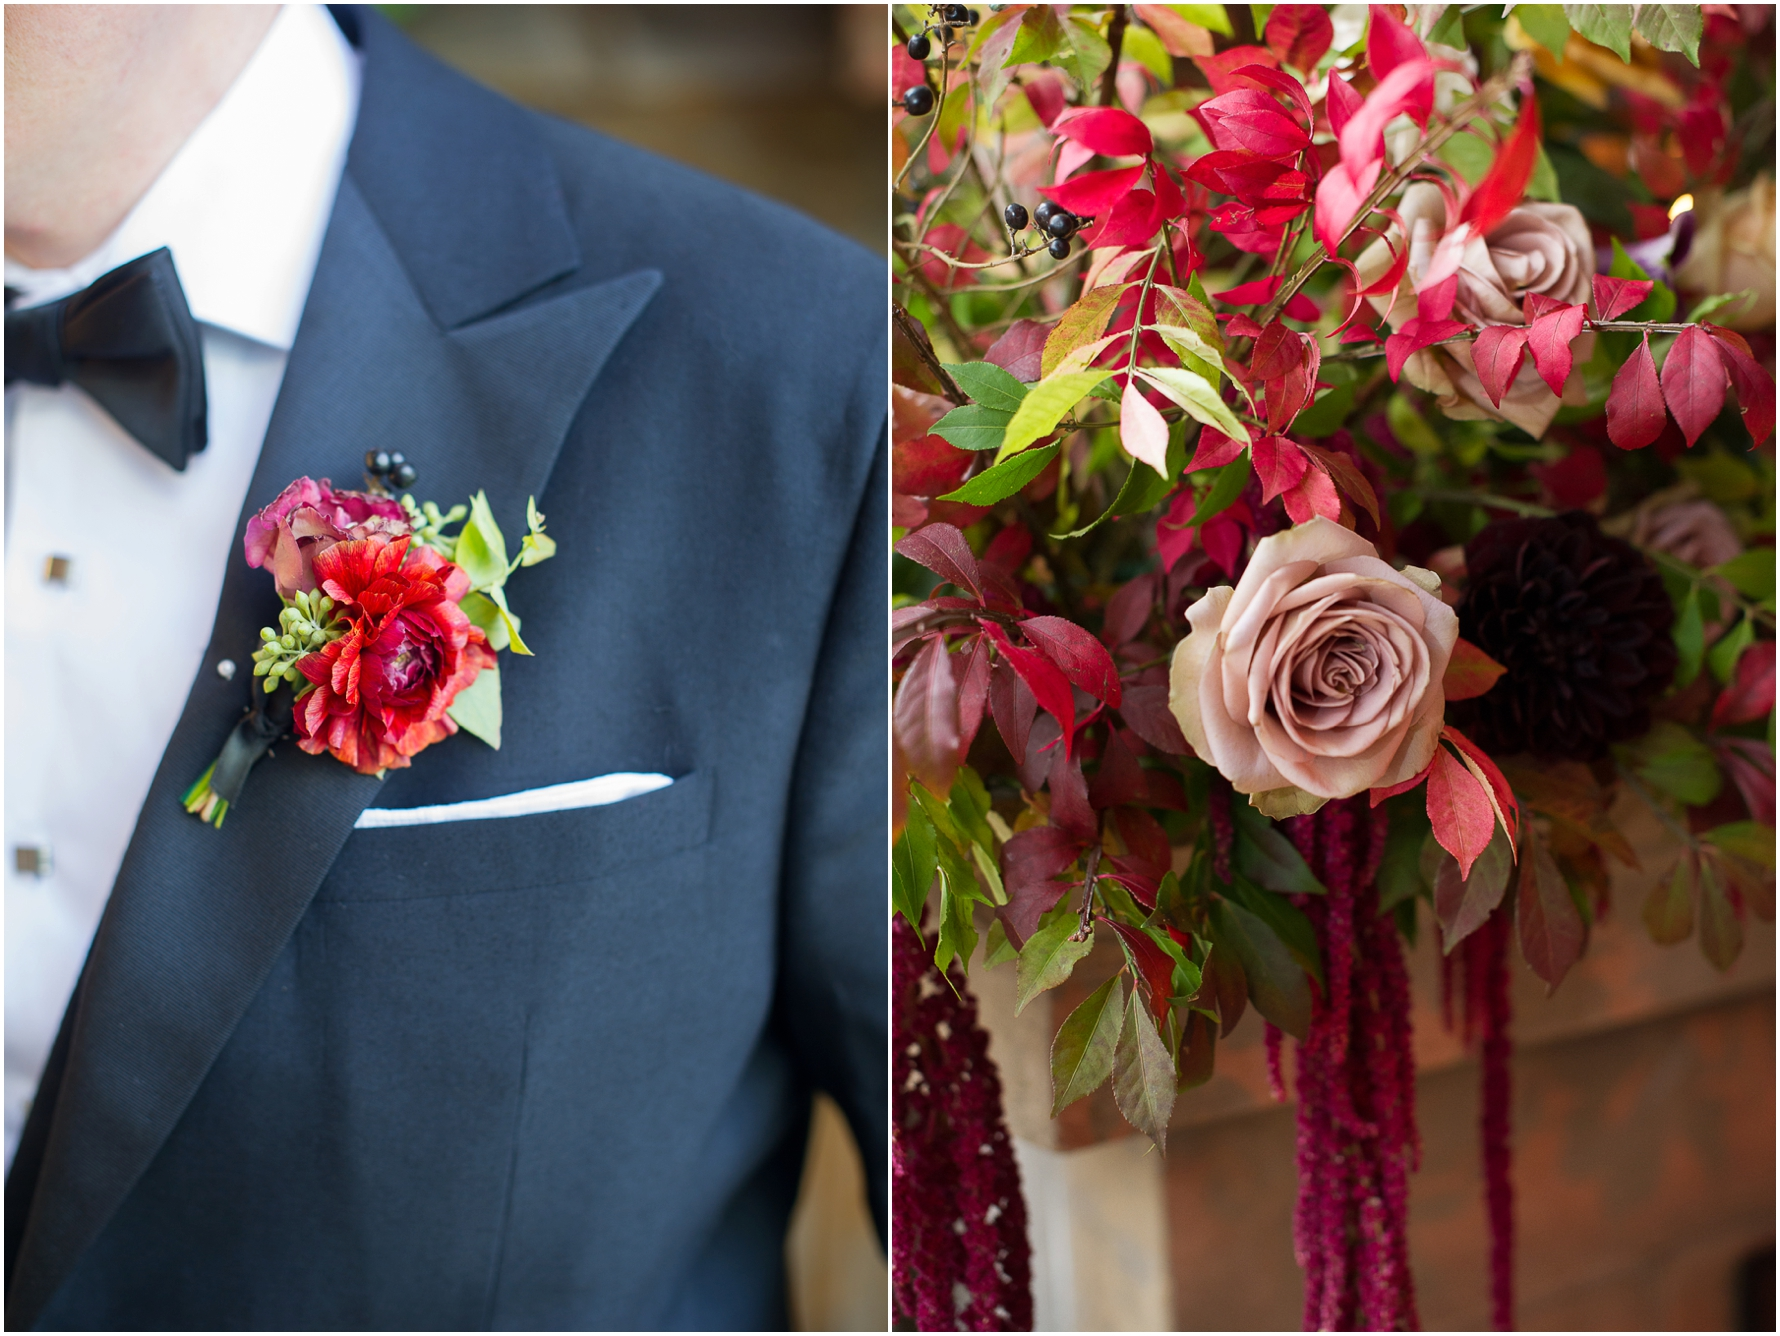 Beautiful flowers for a fall wedding in October